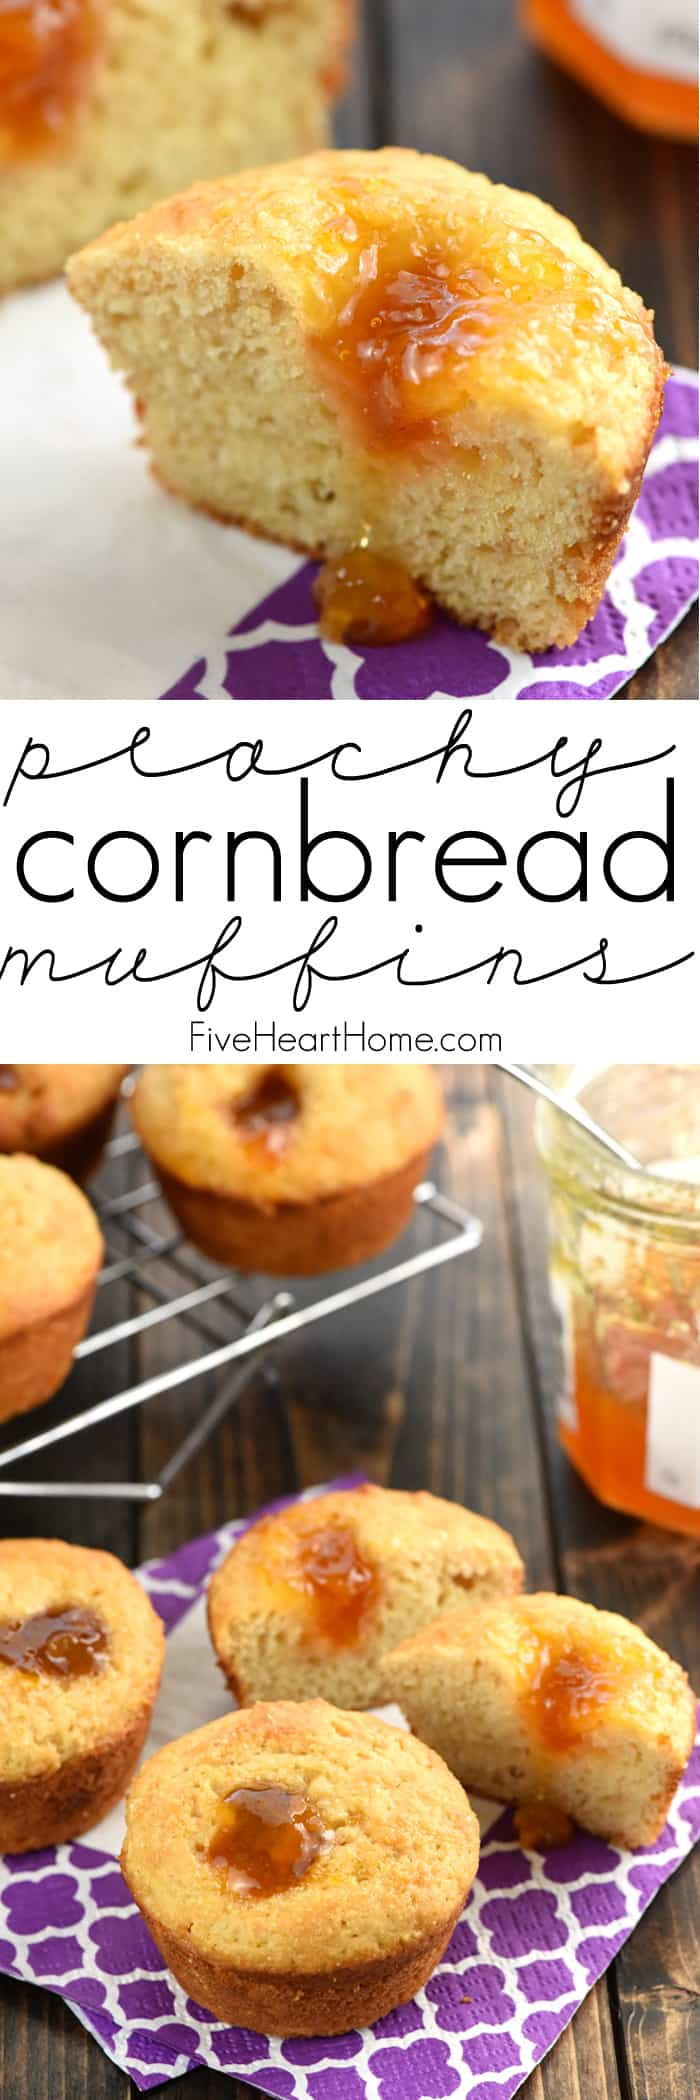 Peachy Cornbread Muffins with Collage and Text Overlay